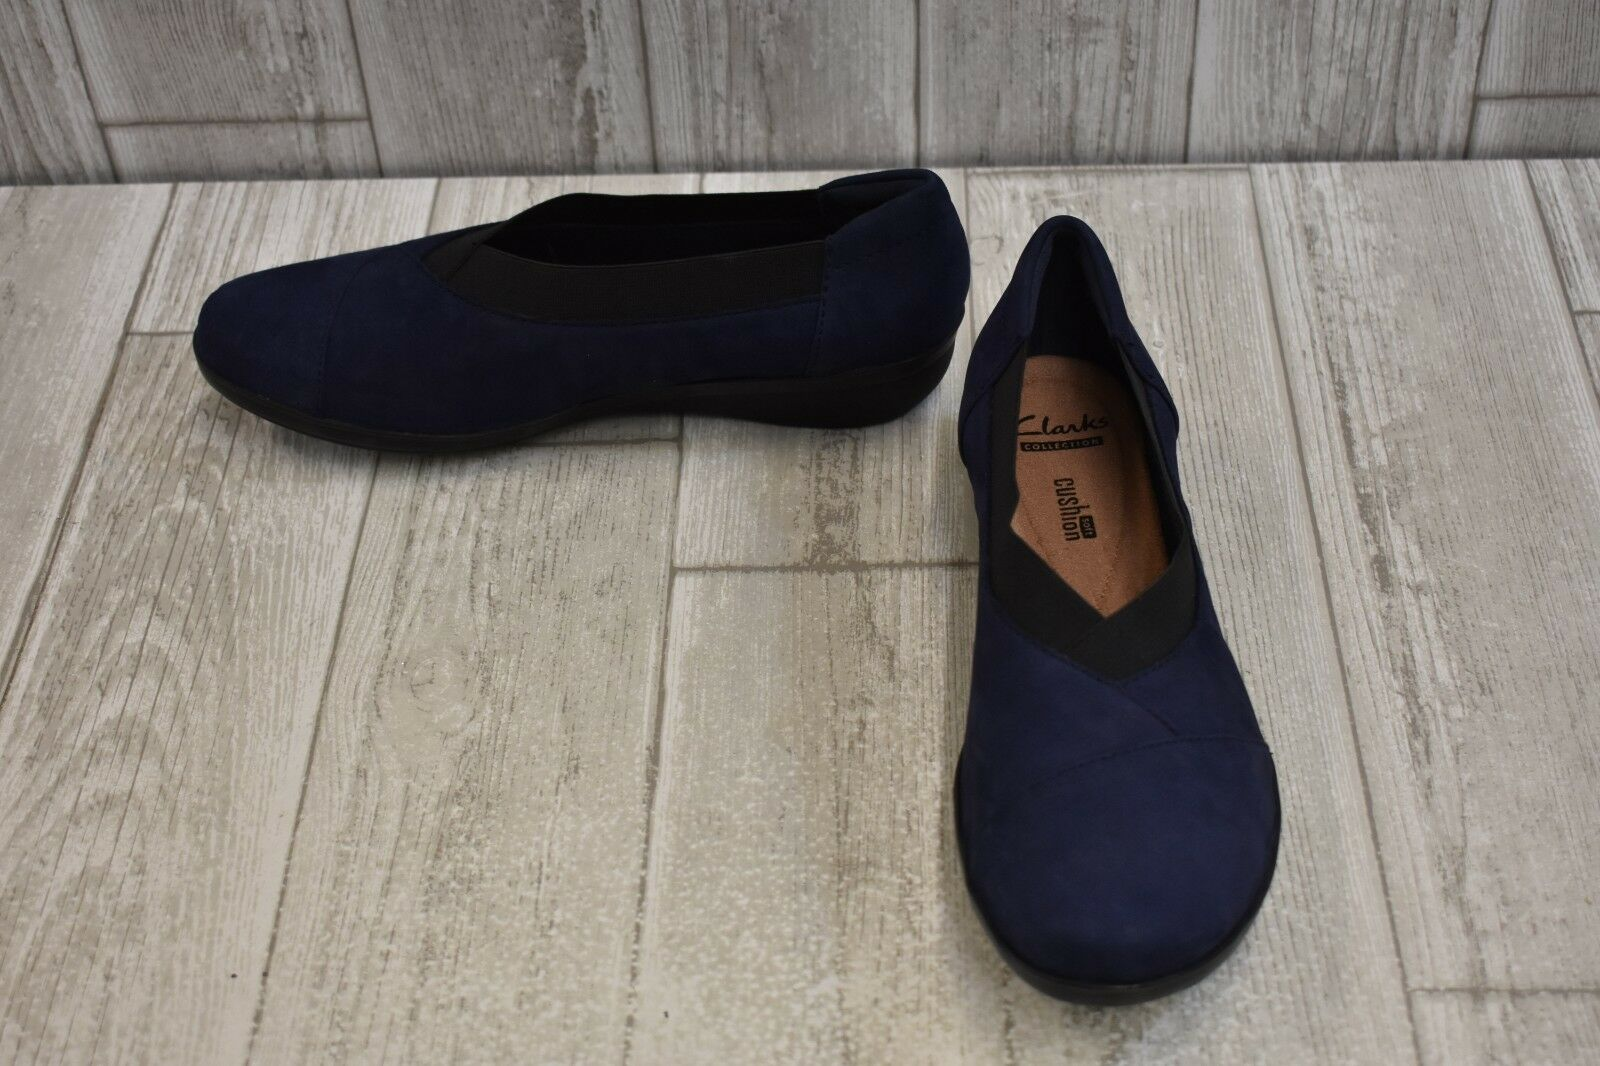 CLARKS Everlay Eve Slip-On Loafer - Women's Size 8M Navy